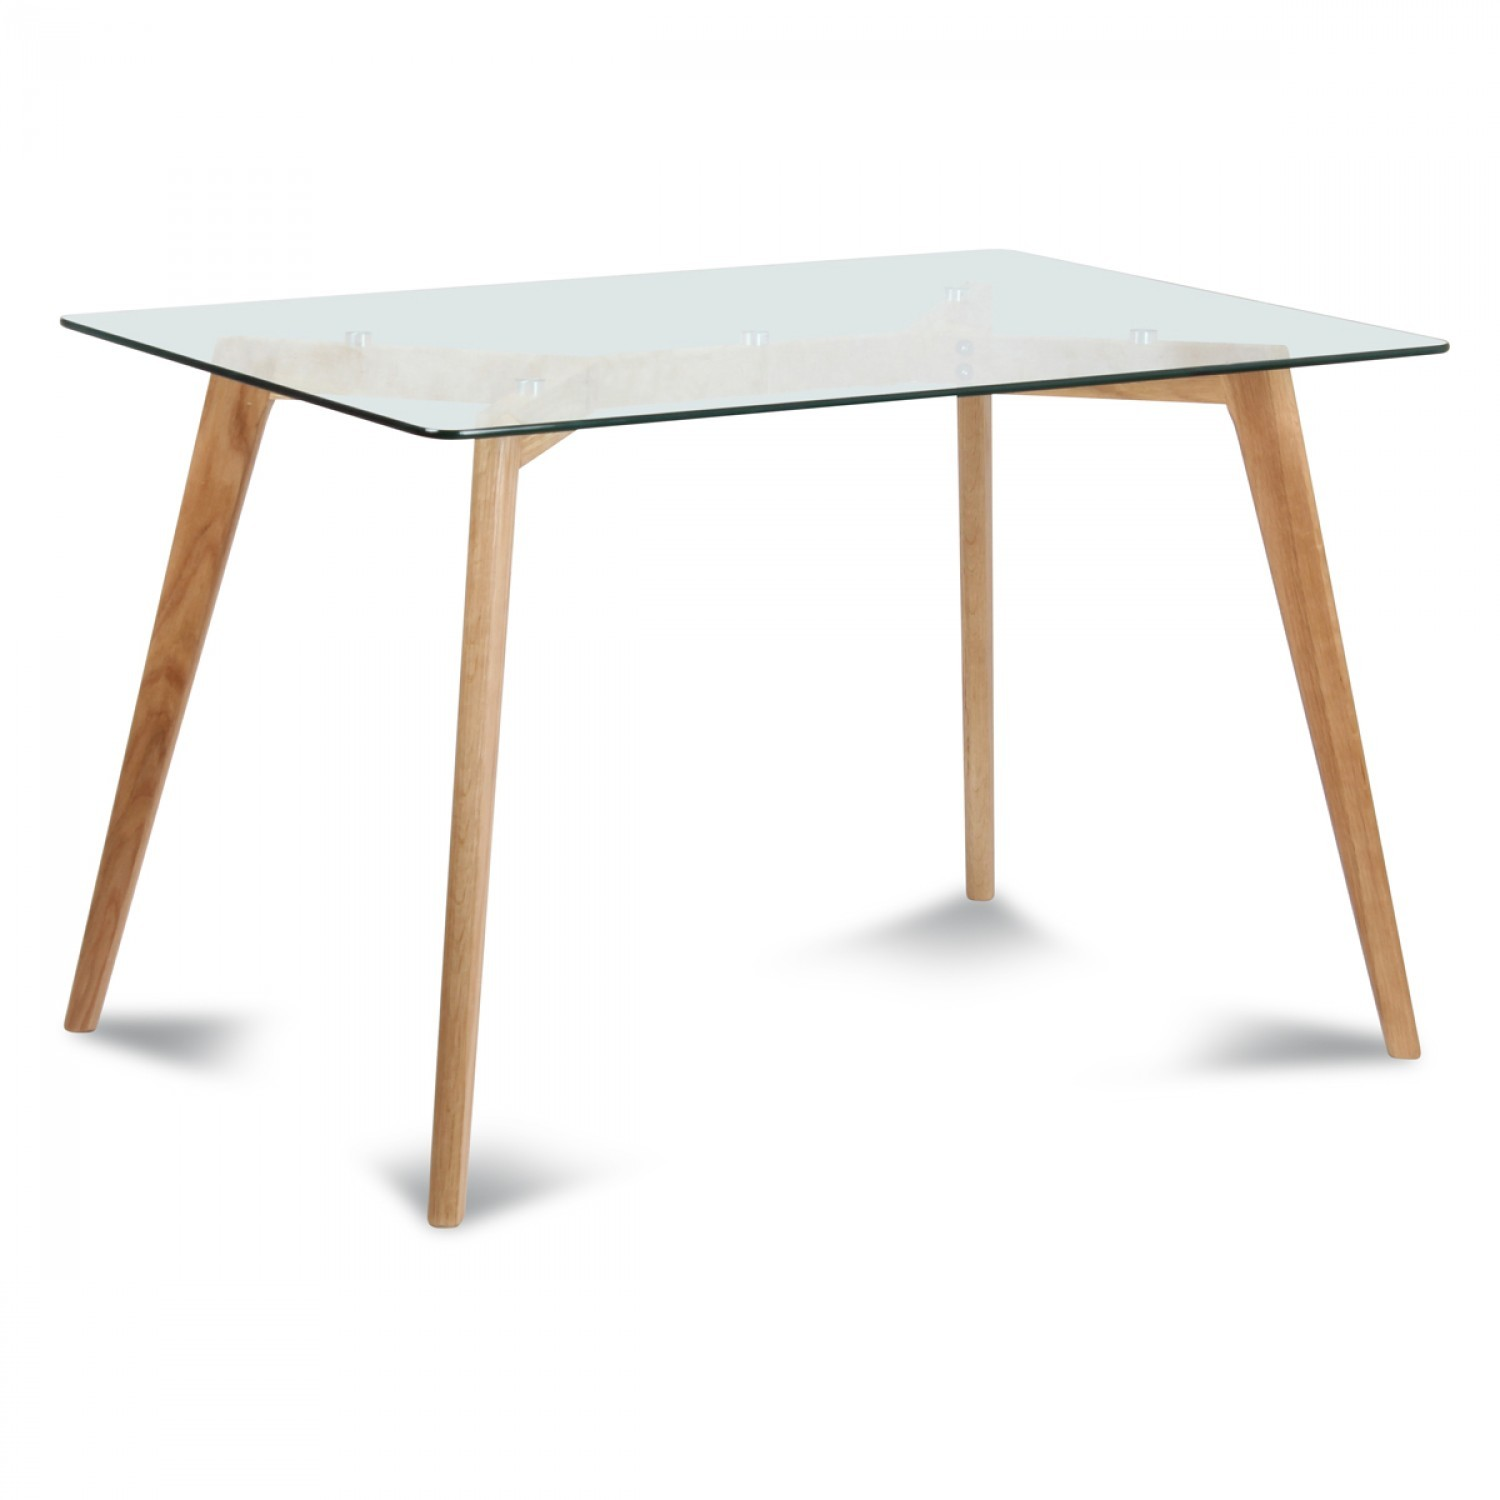 Table Rectangulaire Plateau De Verre Style Scandinave